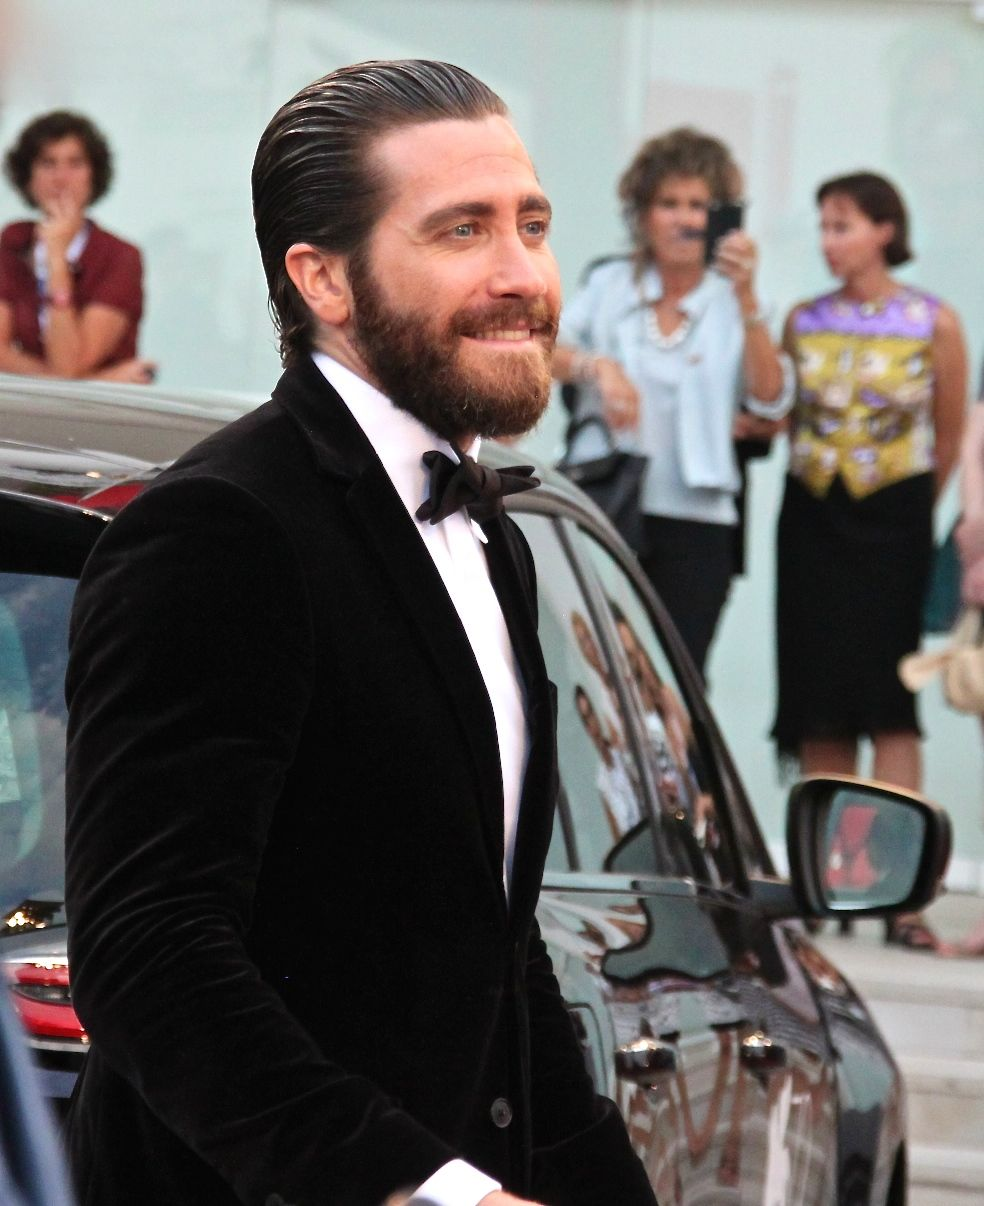 Jake Gyllenhaal wowed crowds at the 2015 Venice Film Festival